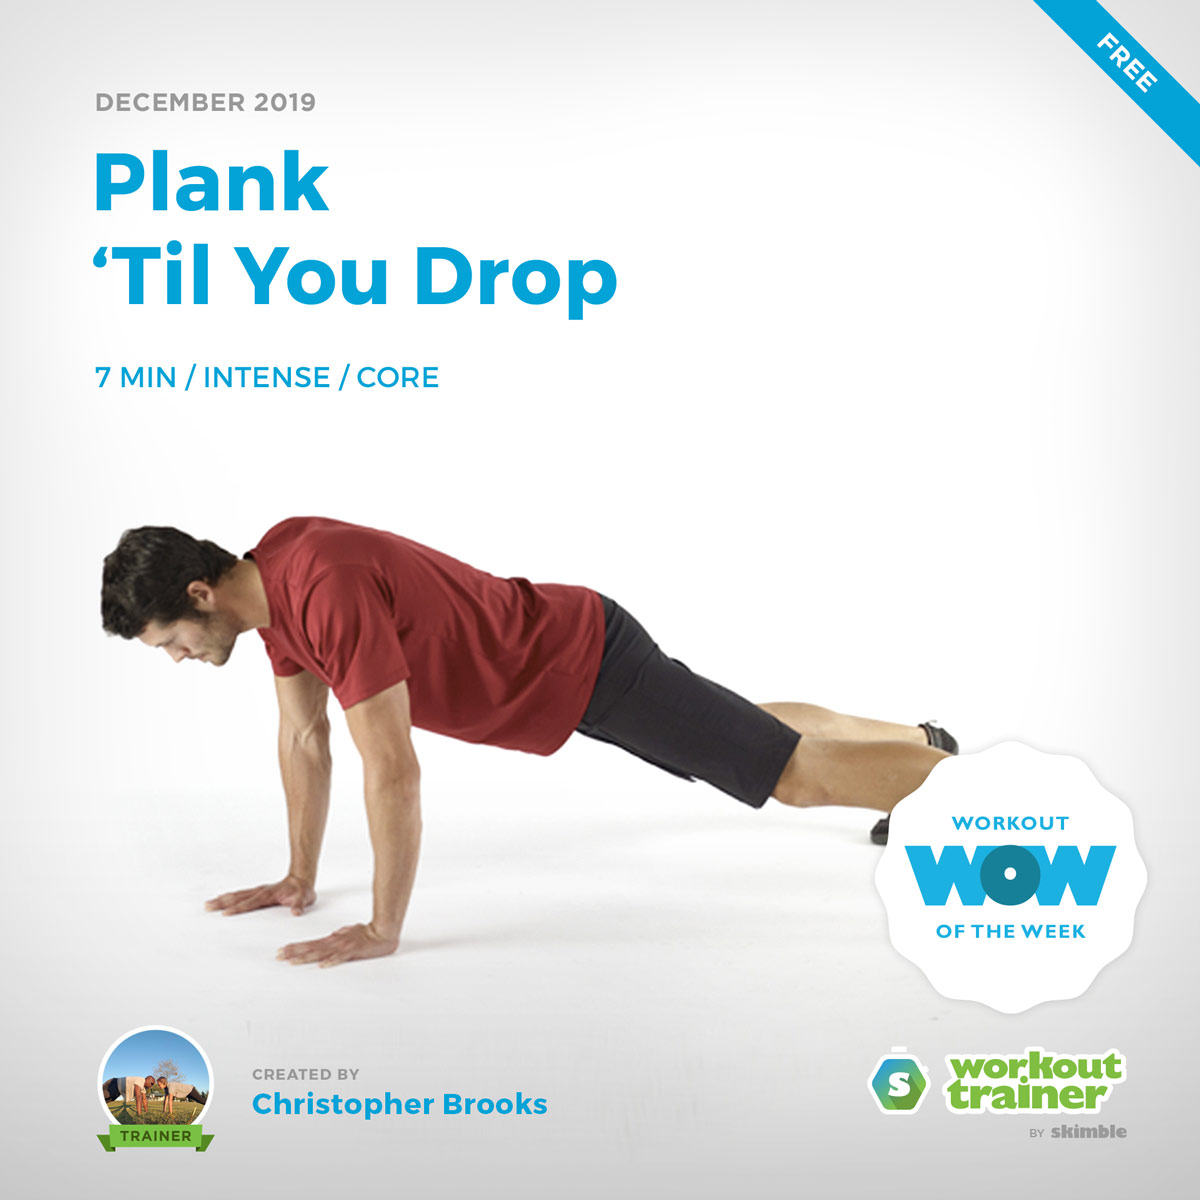 Workout Trainer by Skimble: Free Workout of the Week: Plank 'Til You Drop by Christopher Brooks